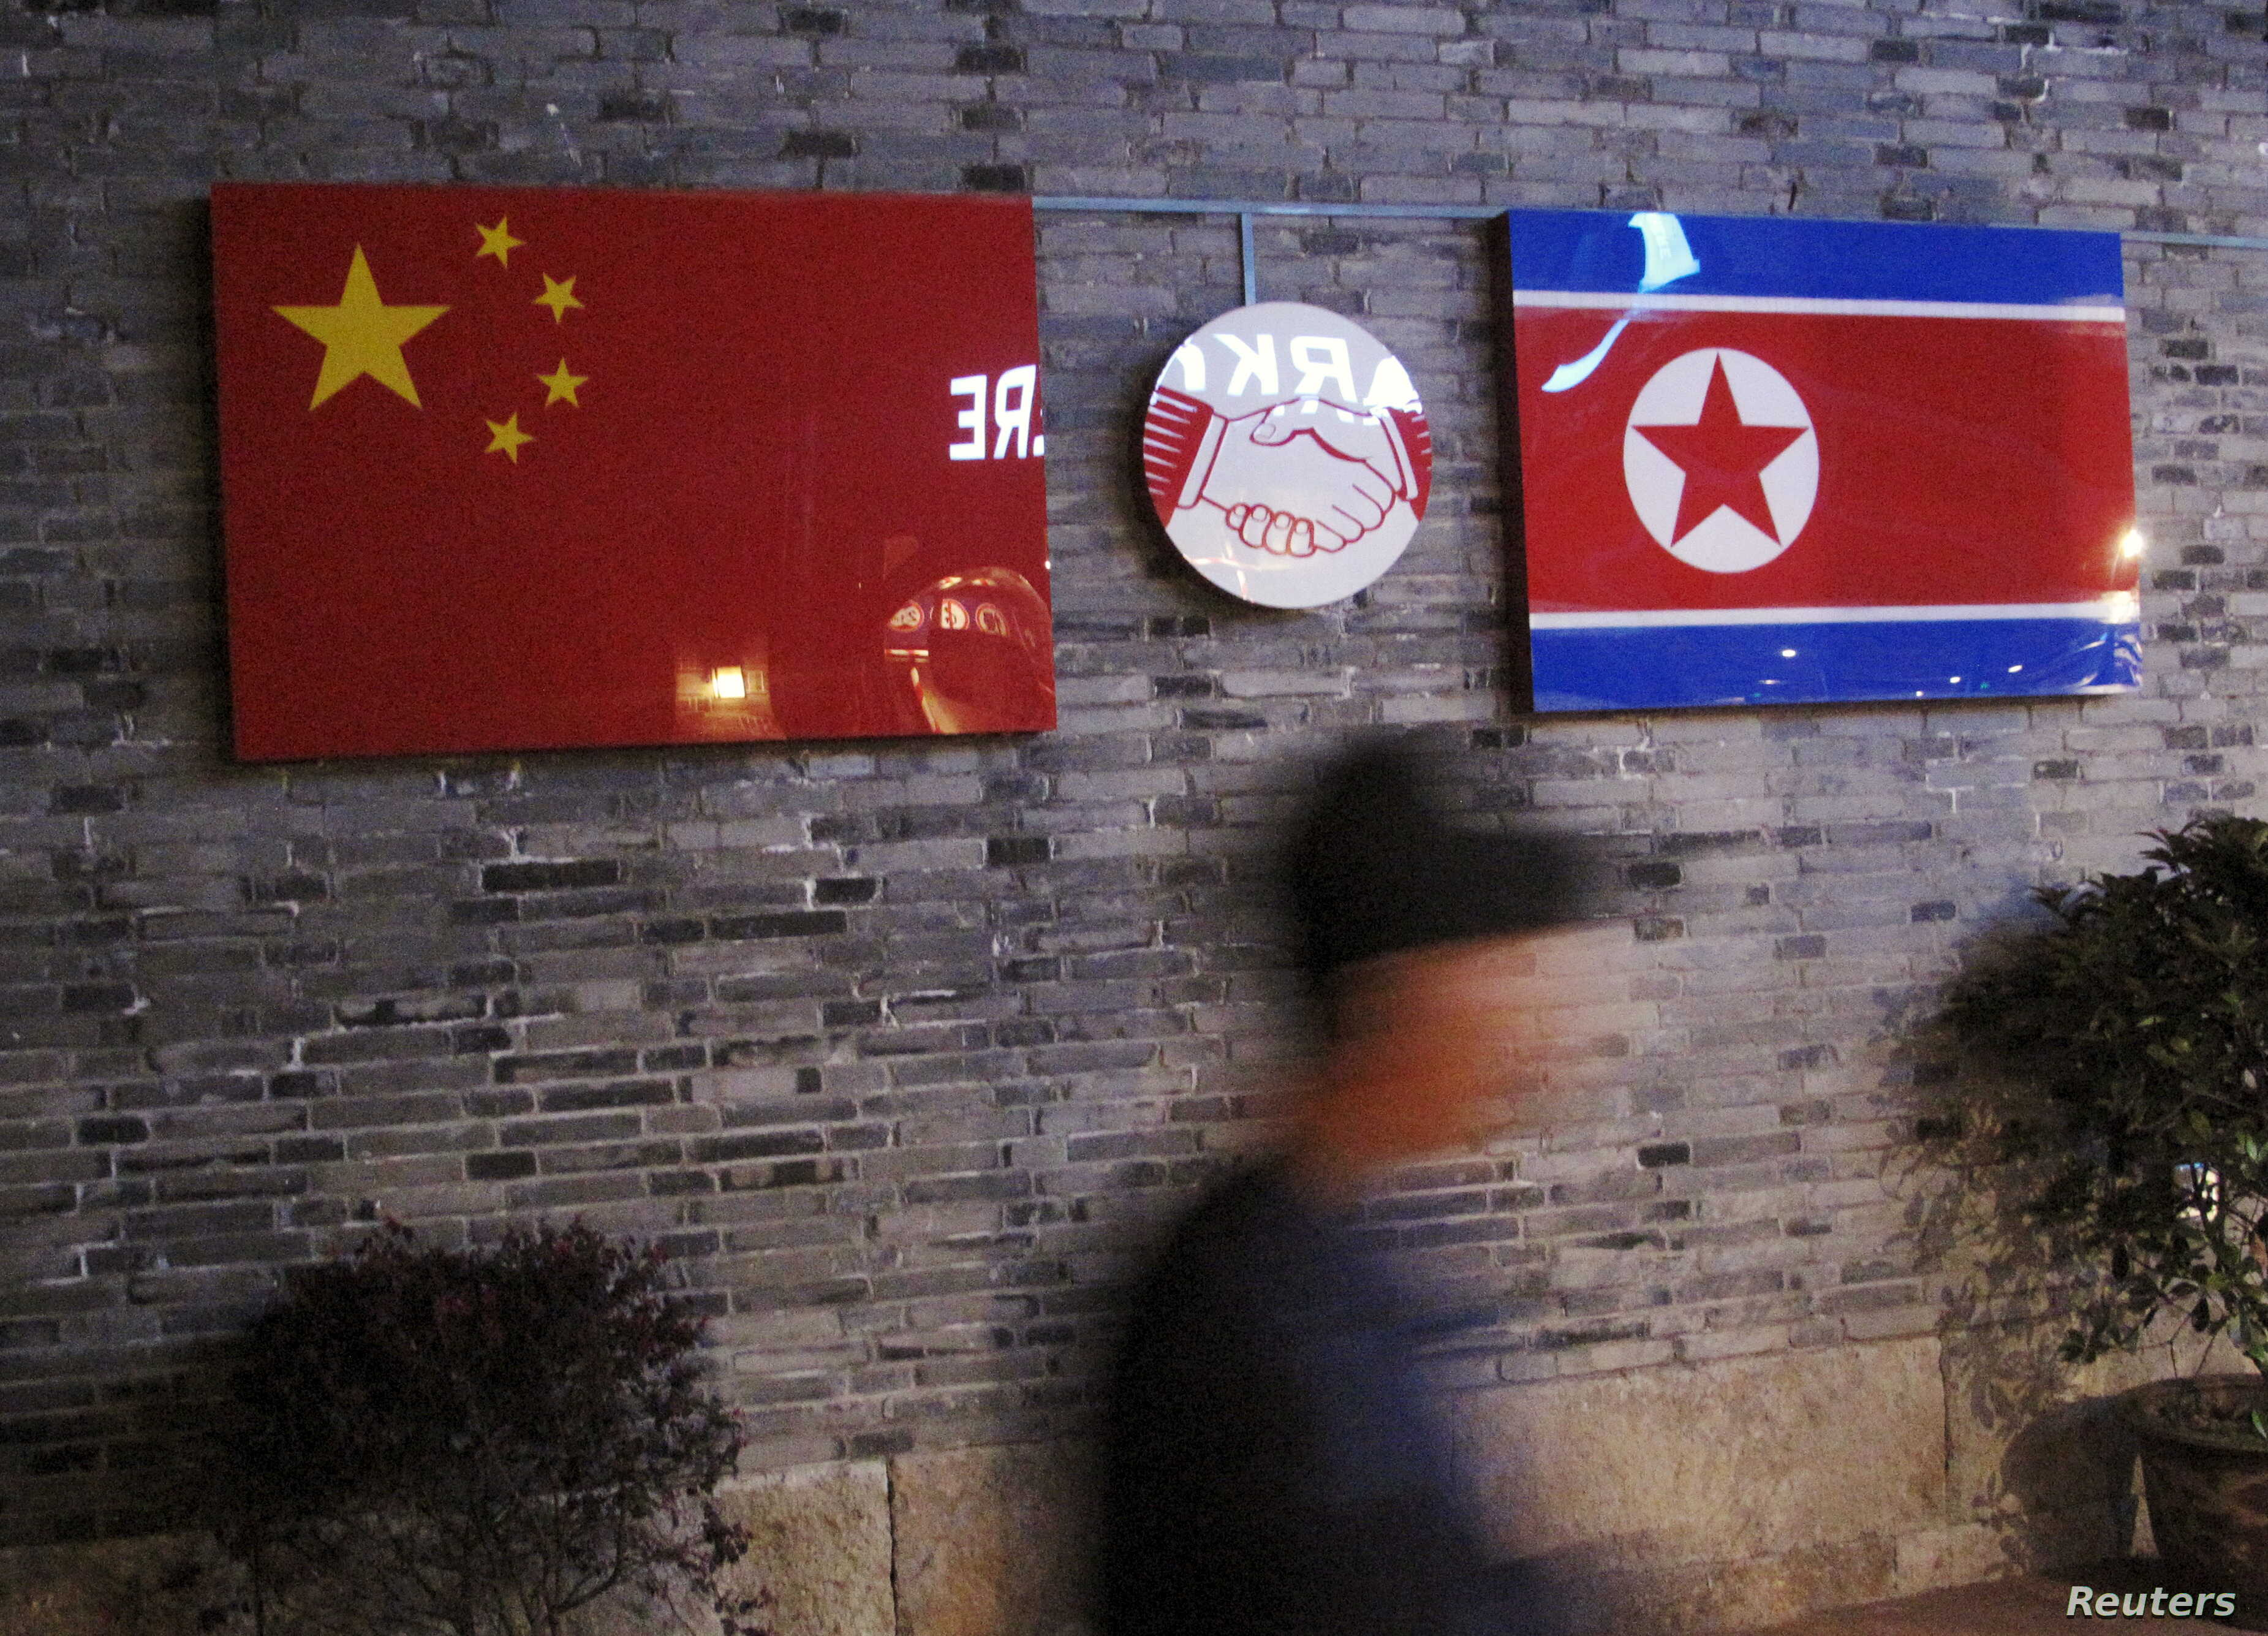 FILE - Flags of China and North Korea are seen outside the closed Ryugyong Korean Restaurant in Ningbo, Zhejiang province, China, April 12, 2016.